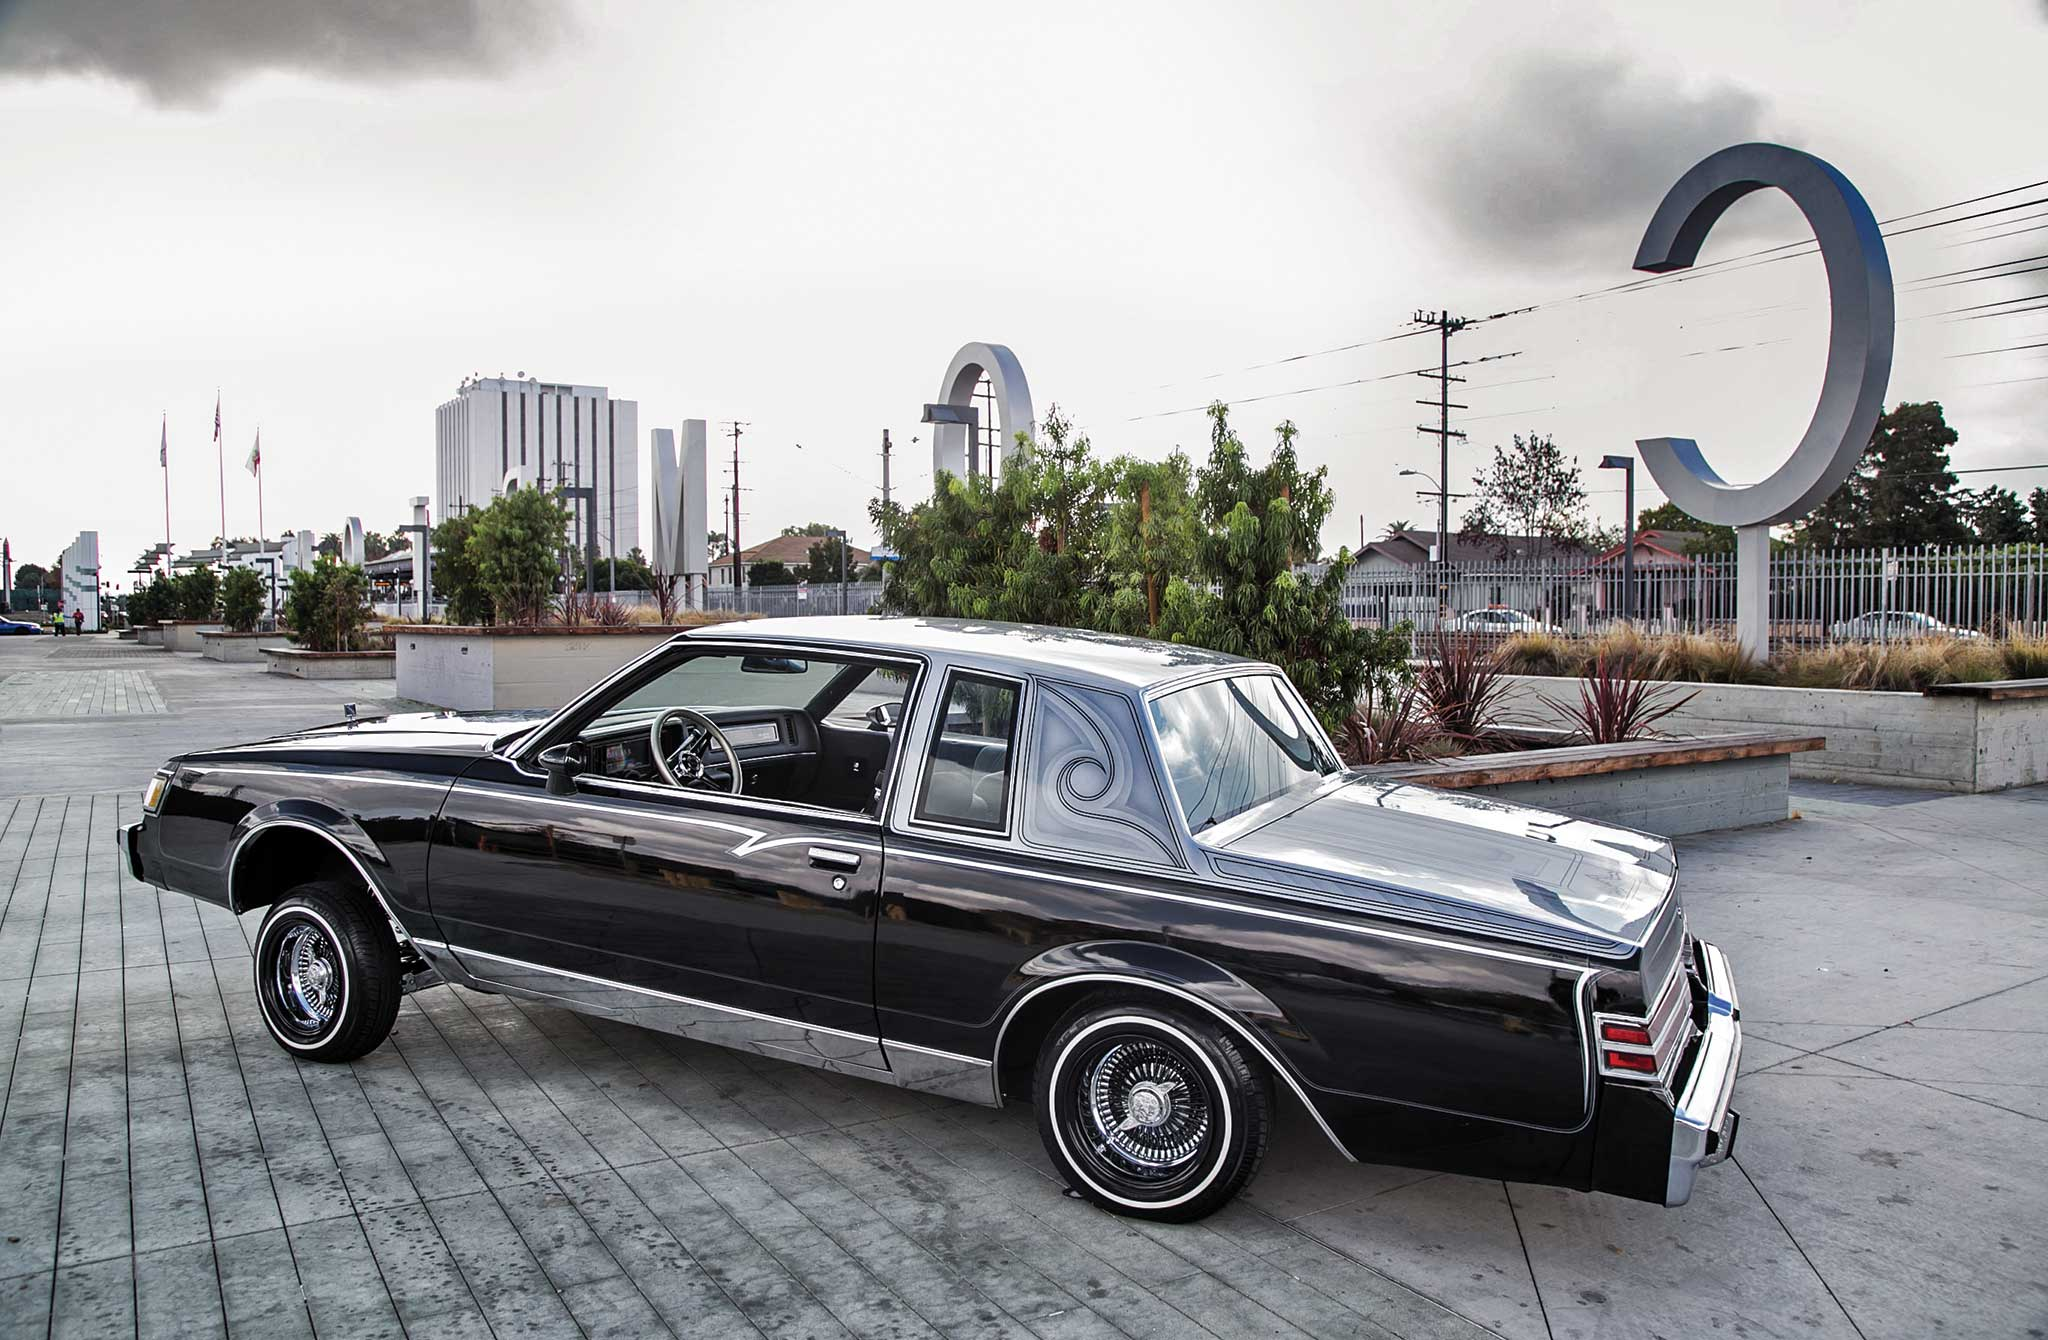 1984 Buick Regal It S All Relative Lowrider